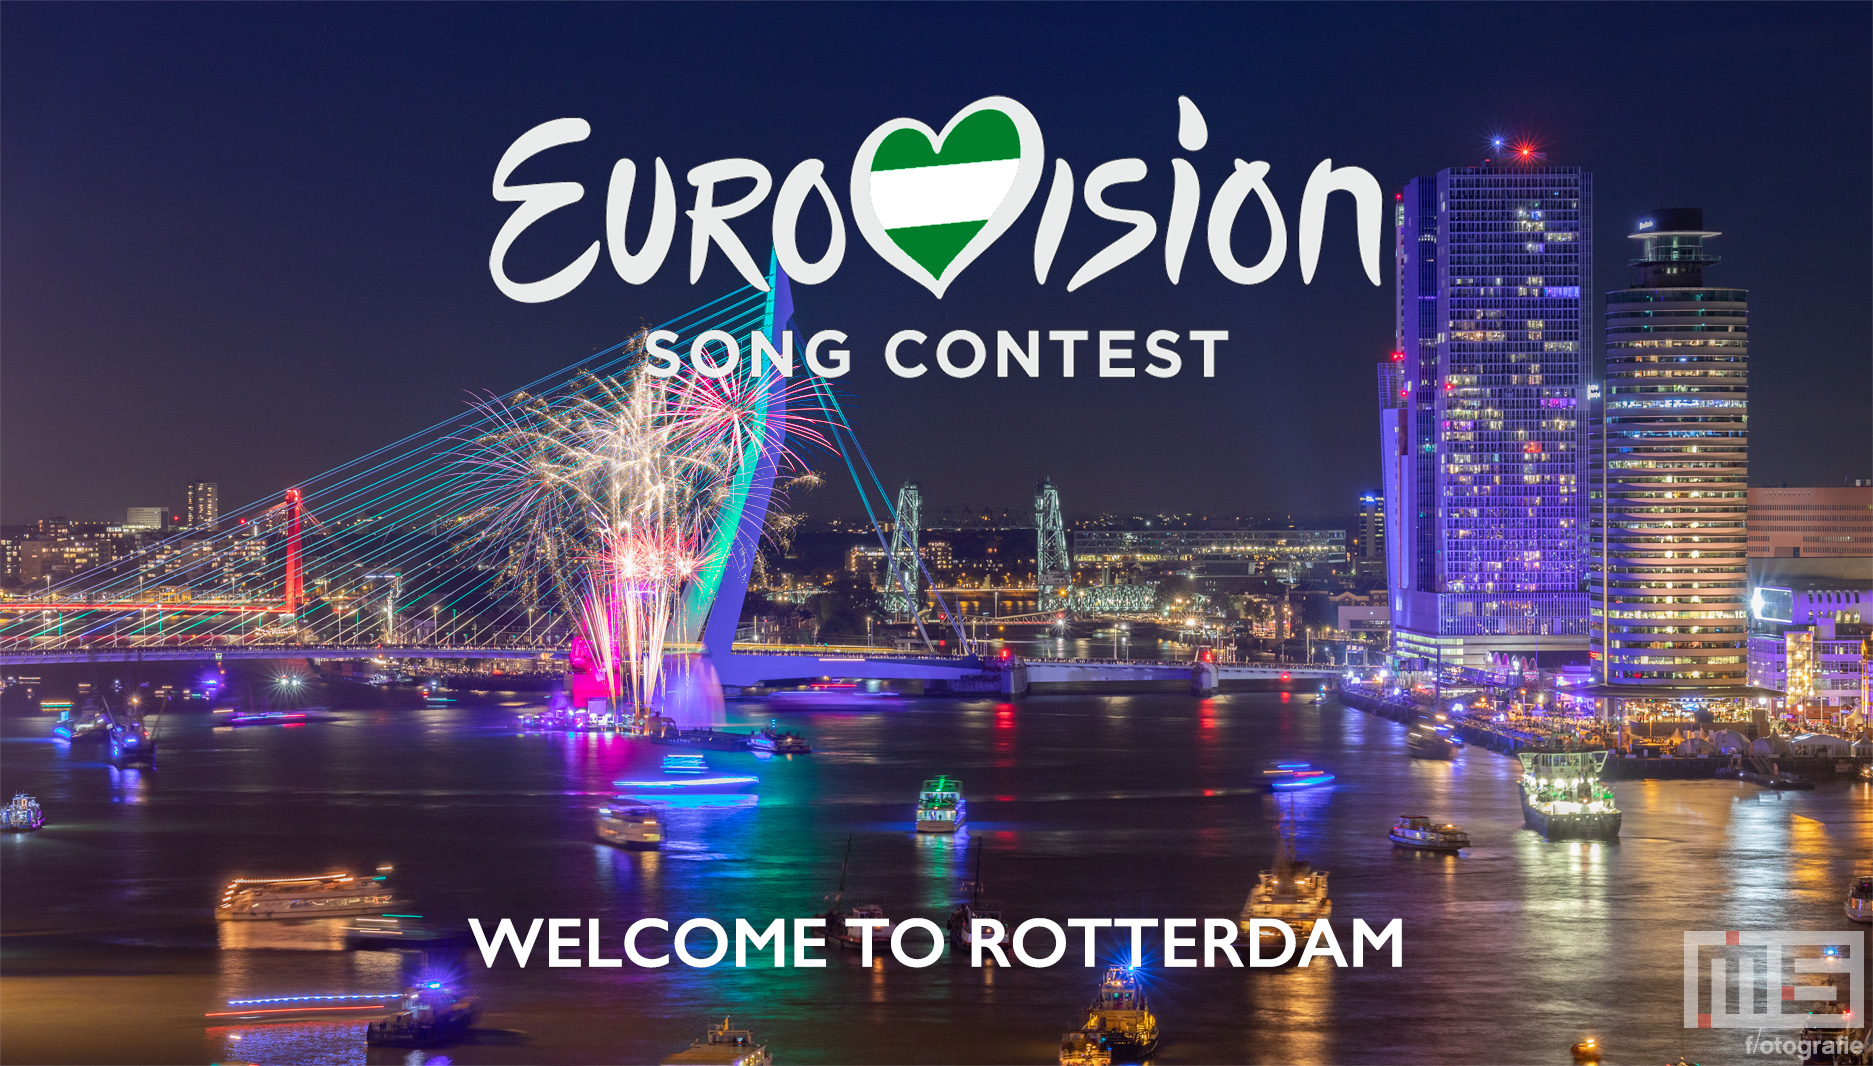 Eurovisie Songfestival 2020 in Rotterdam Ahoy Cover